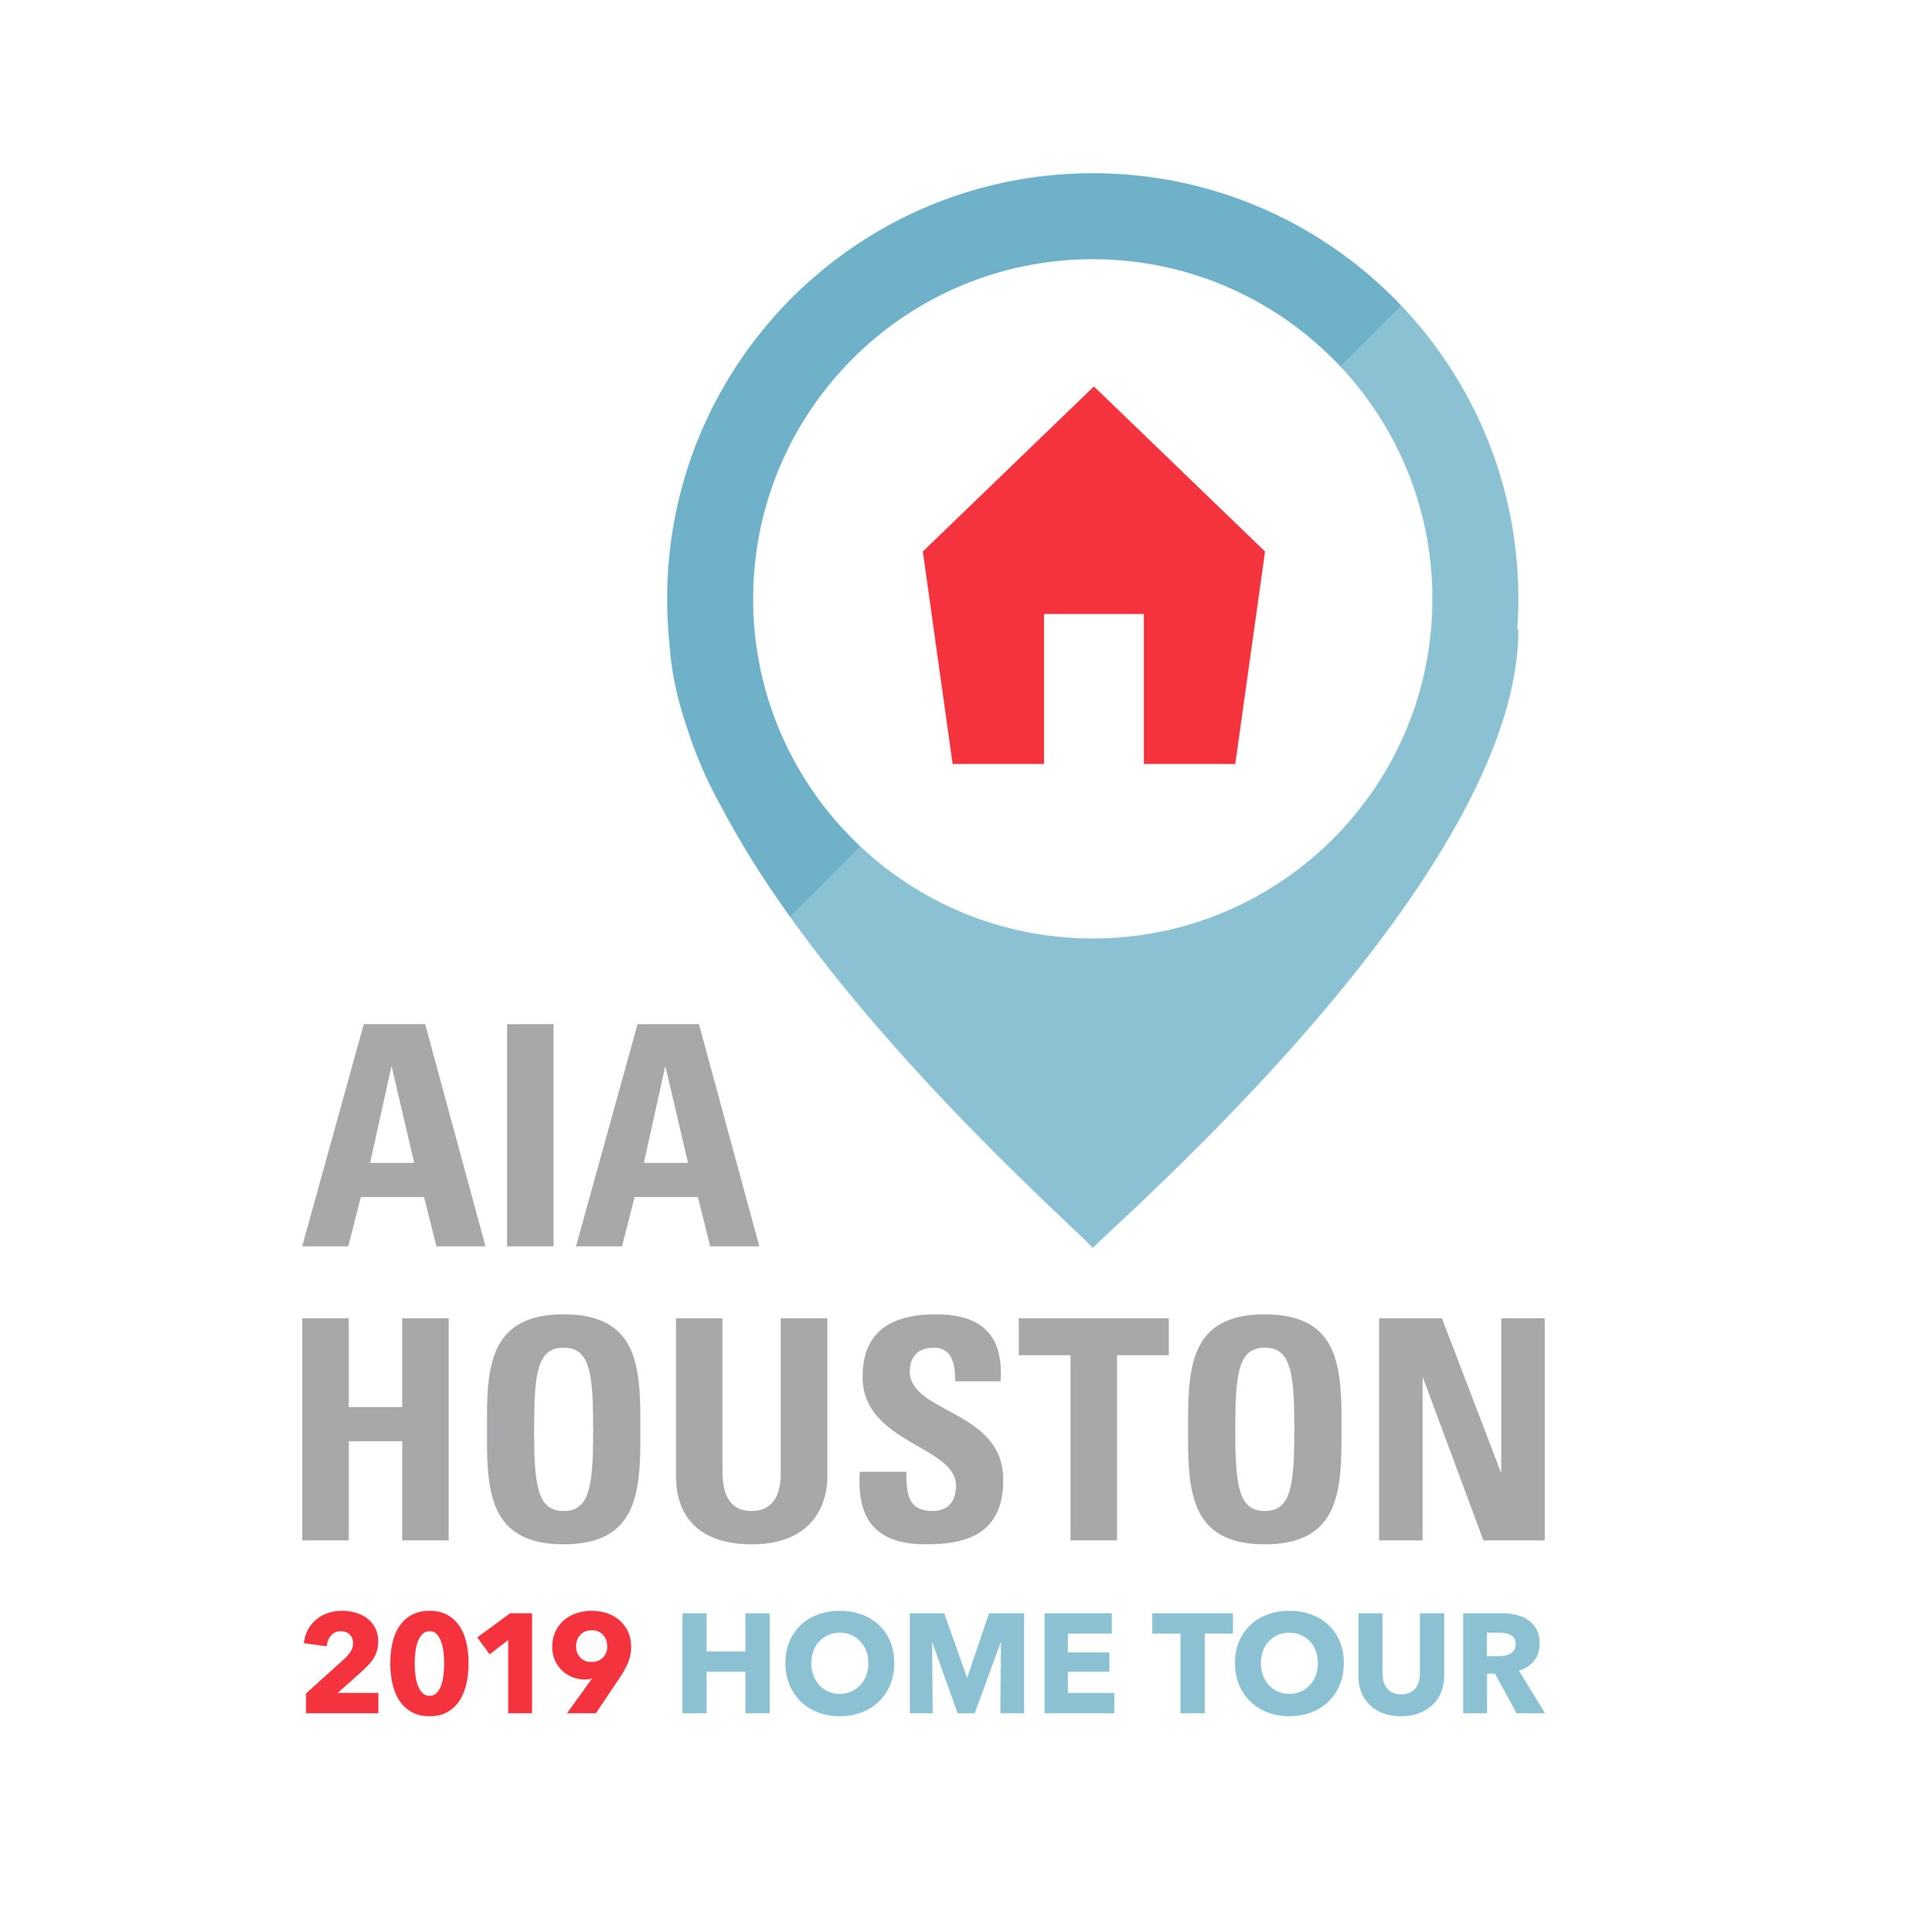 AIA Houston Home Tour - A Nonprofit fundraiser to support various AIA Houston initiatives. October 19-20, 2019.